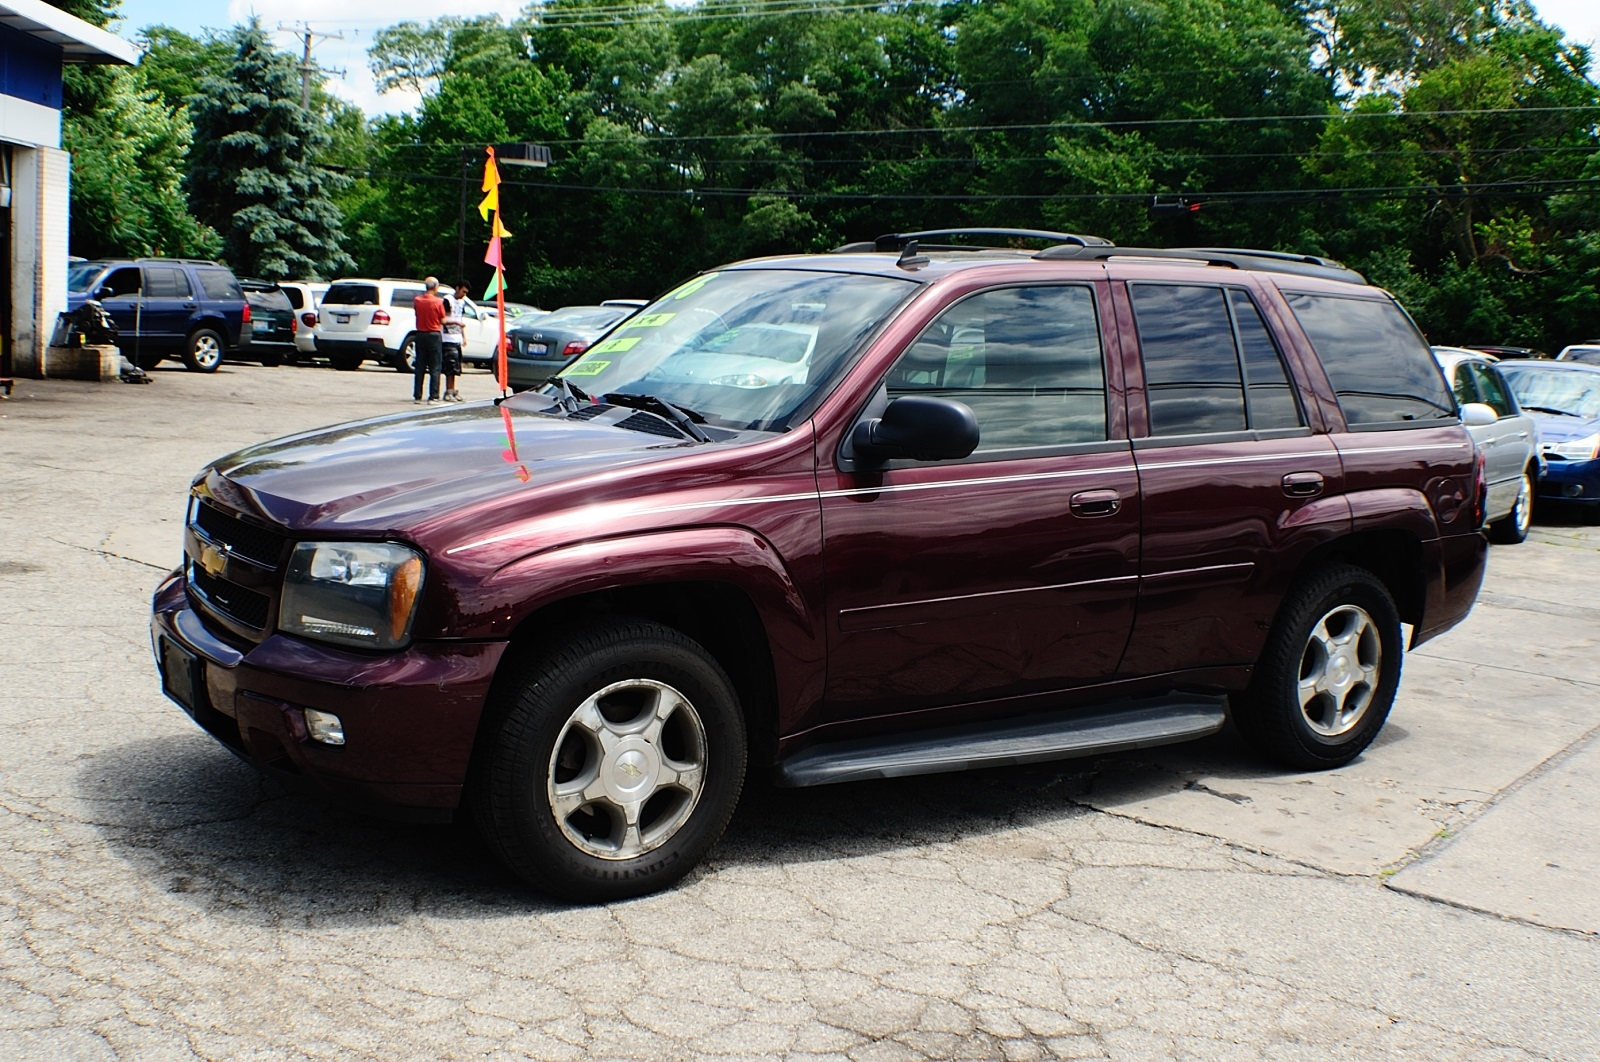 2006 Chevrolet Trailblazer LT Burgundy Used SUV Sale Addison Algonquin Arlington Heights Bartlett